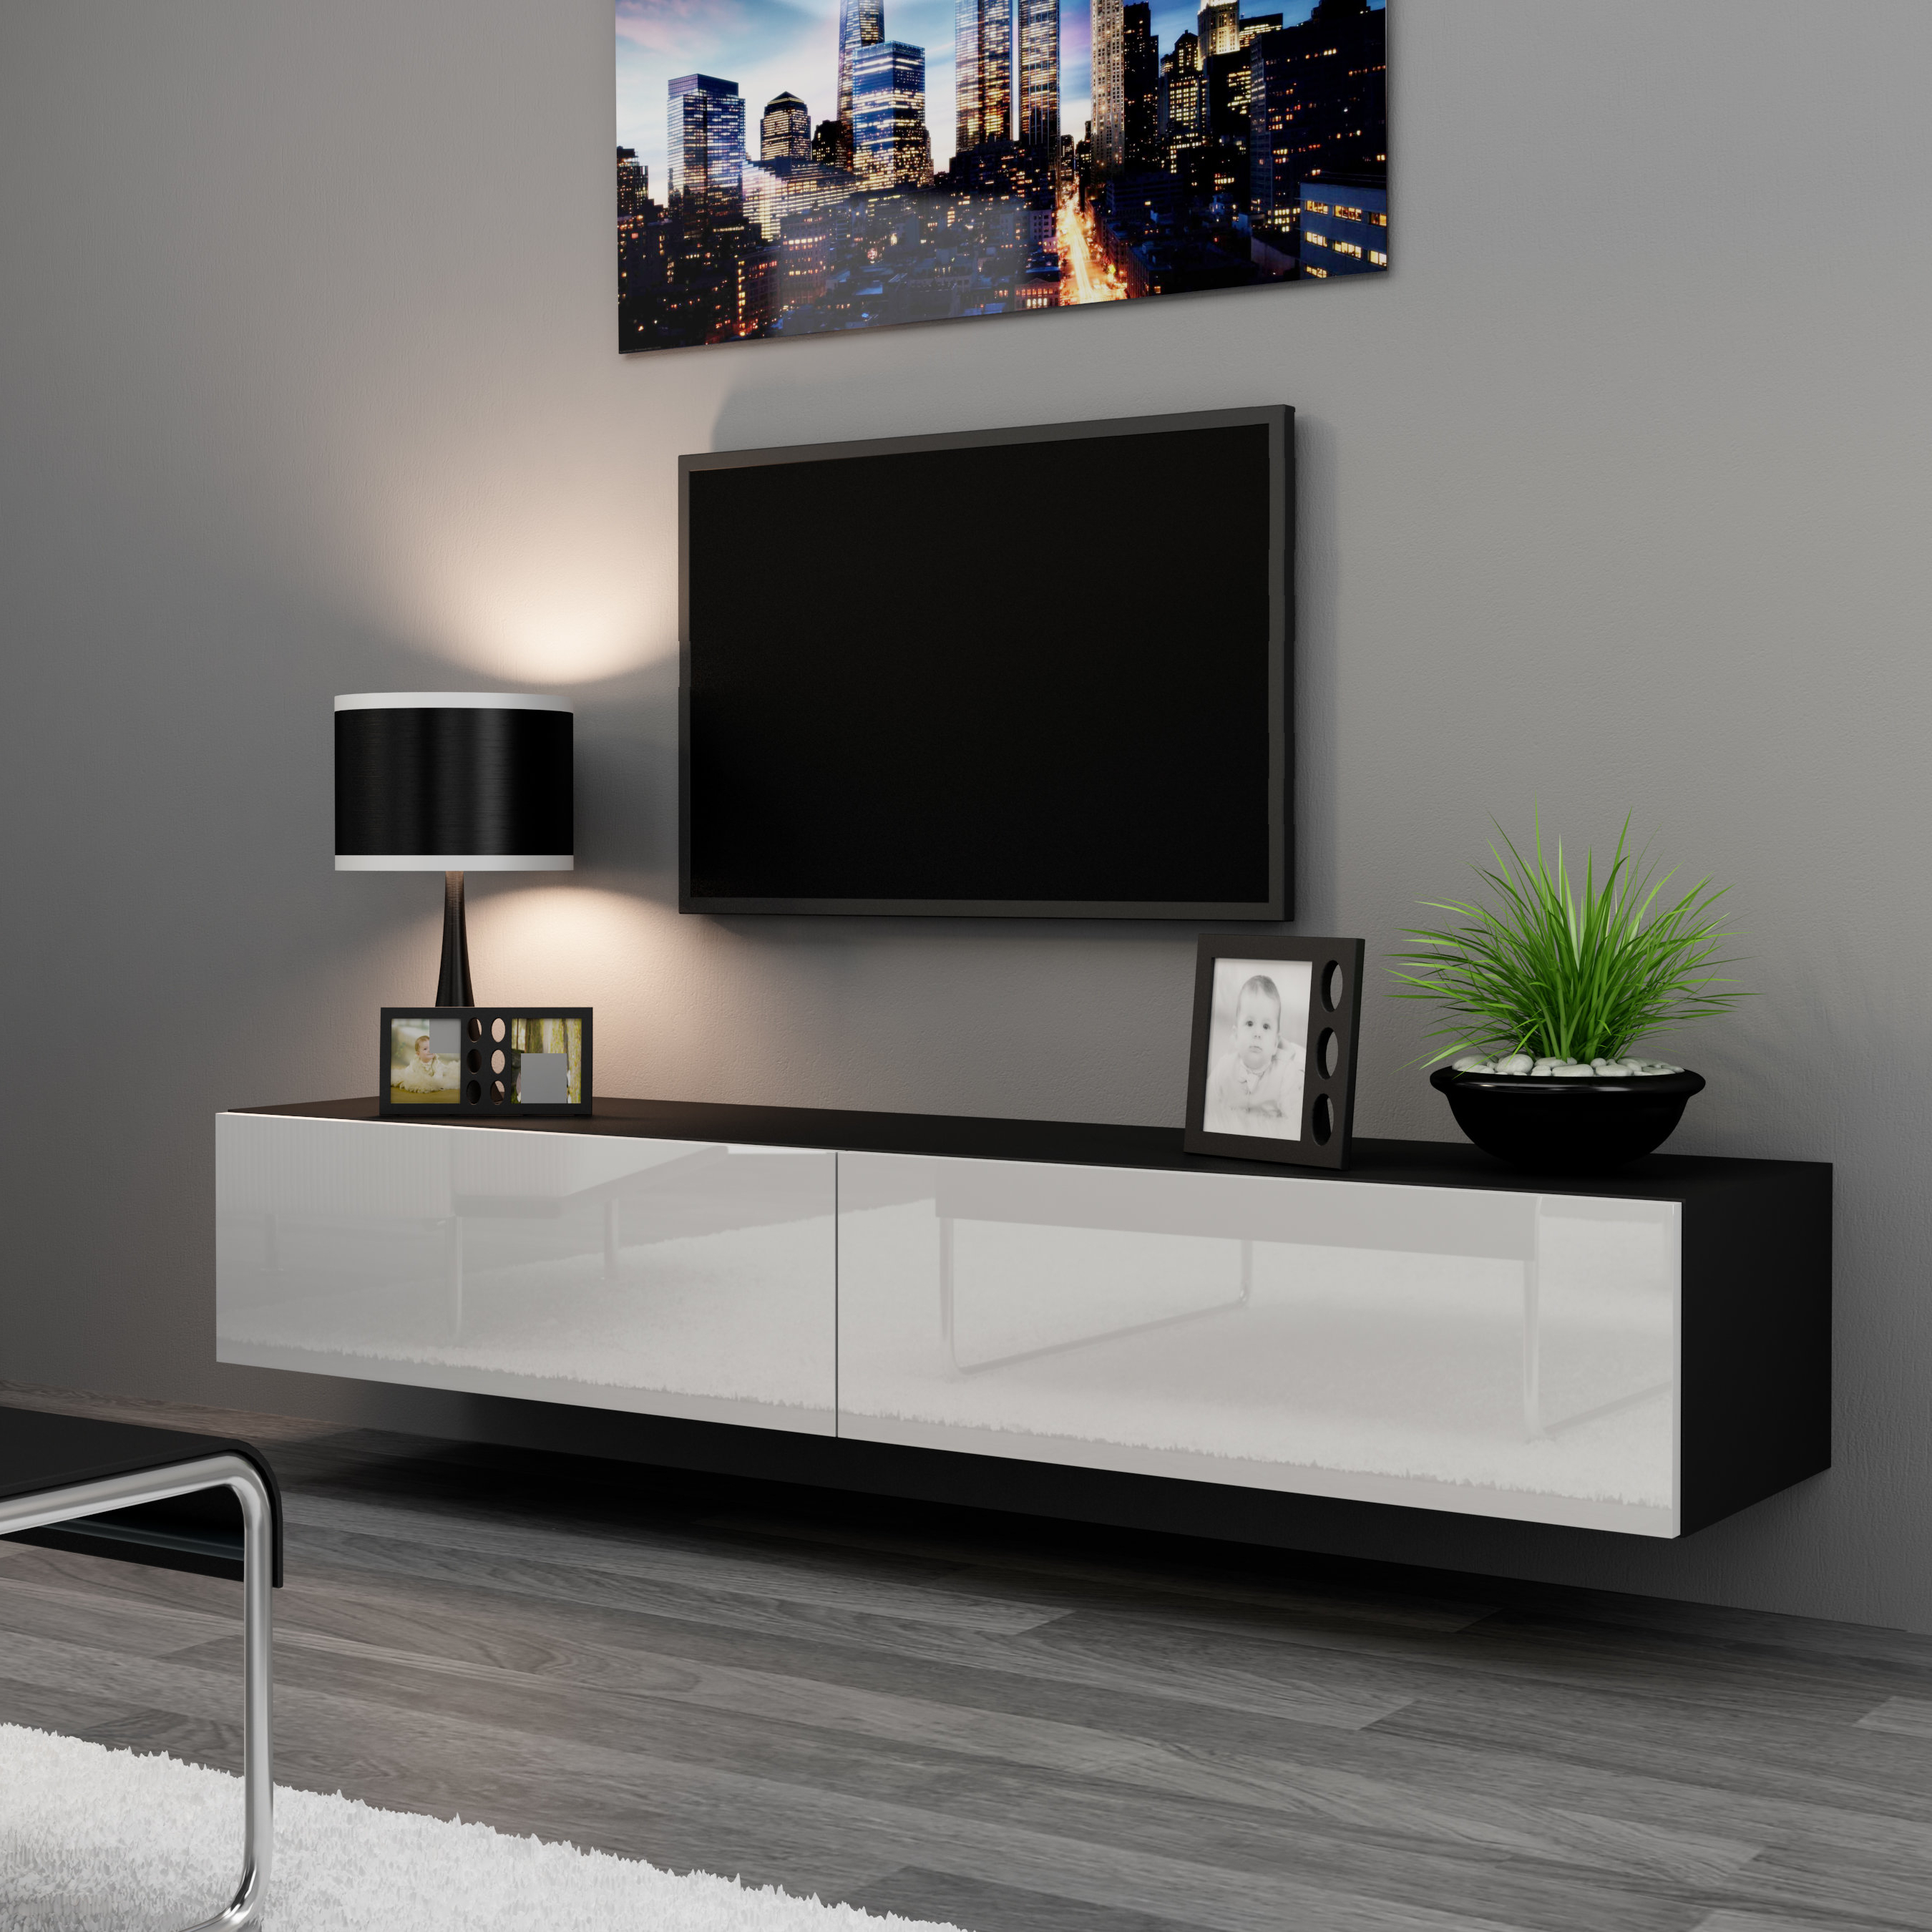 Allmodern In Most Recently Released All Modern Tv Stands (Gallery 26 of 36)